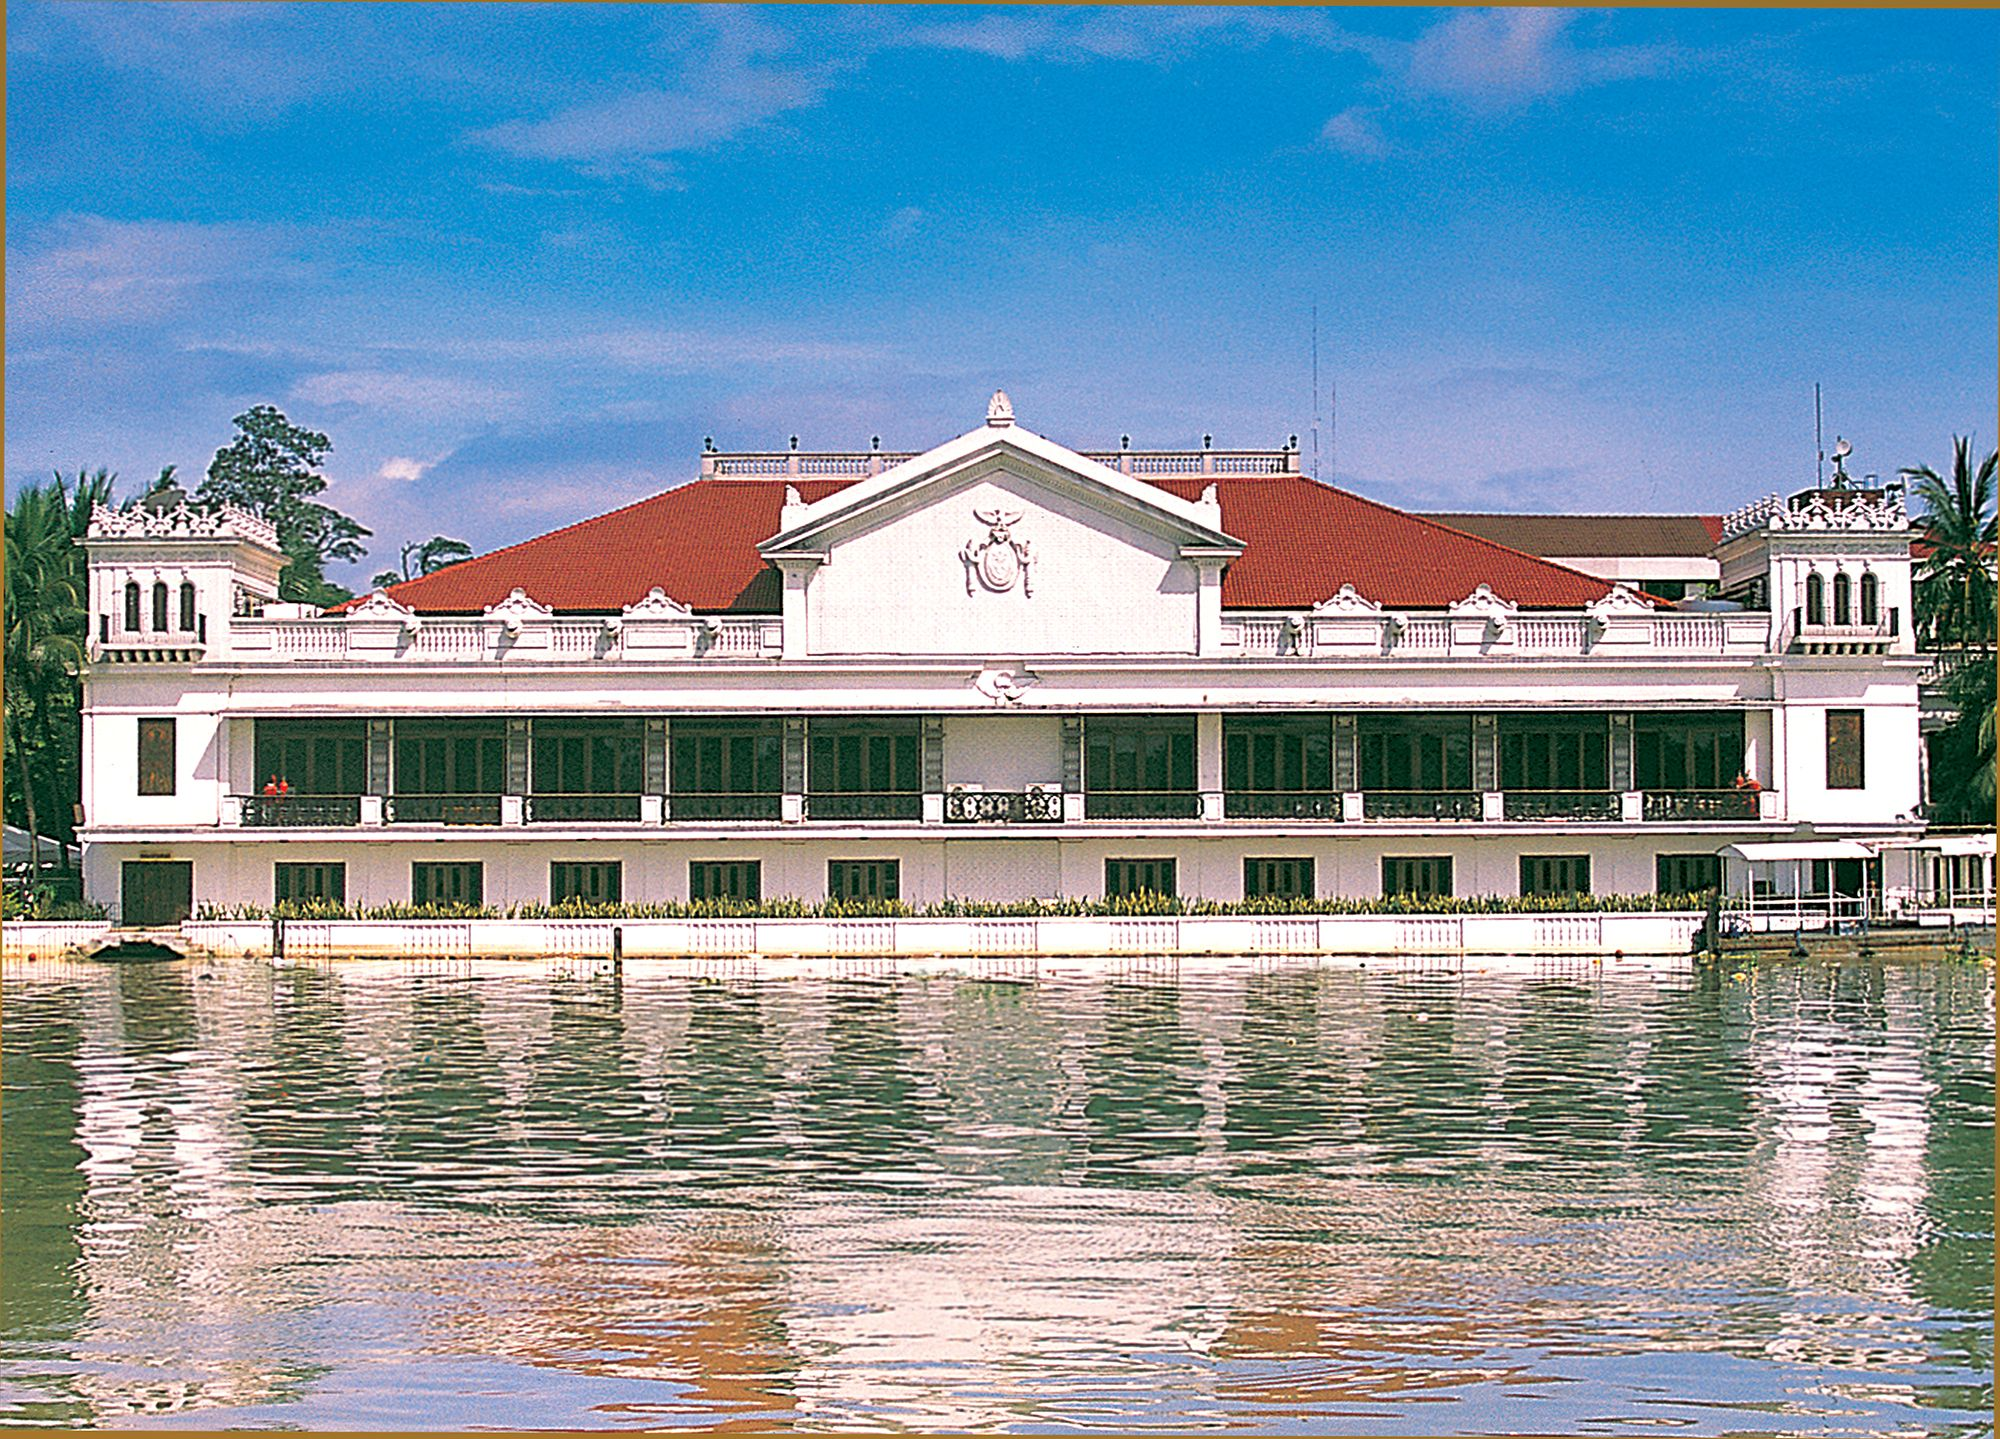 A Look Inside Malacañang—The Seat Of Power In The Philippines